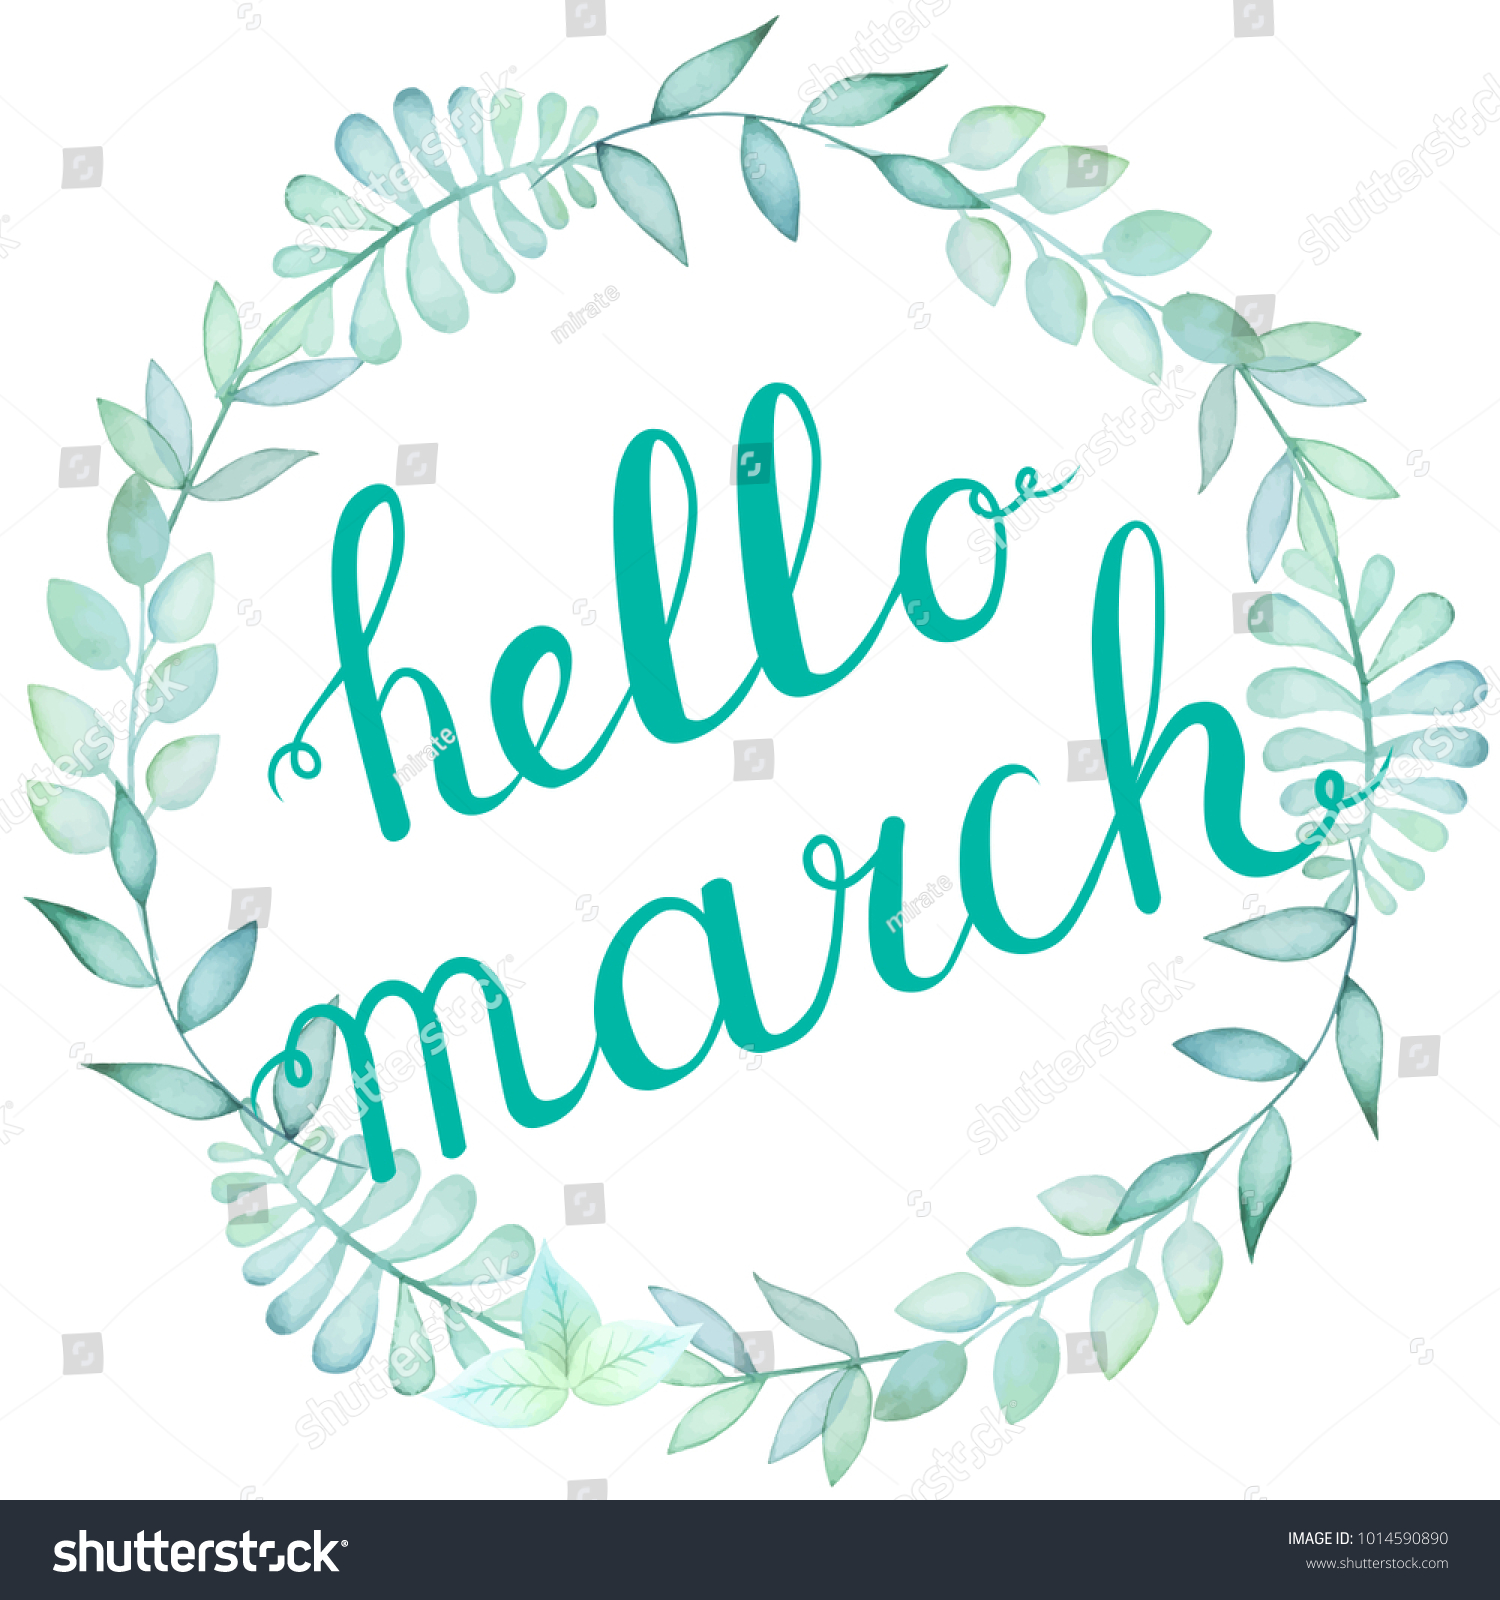 Hello March Ink Calligraphy Phrase In Watercolor Leaves Wreath. Nice  Welcome Spring Greeting Card Or